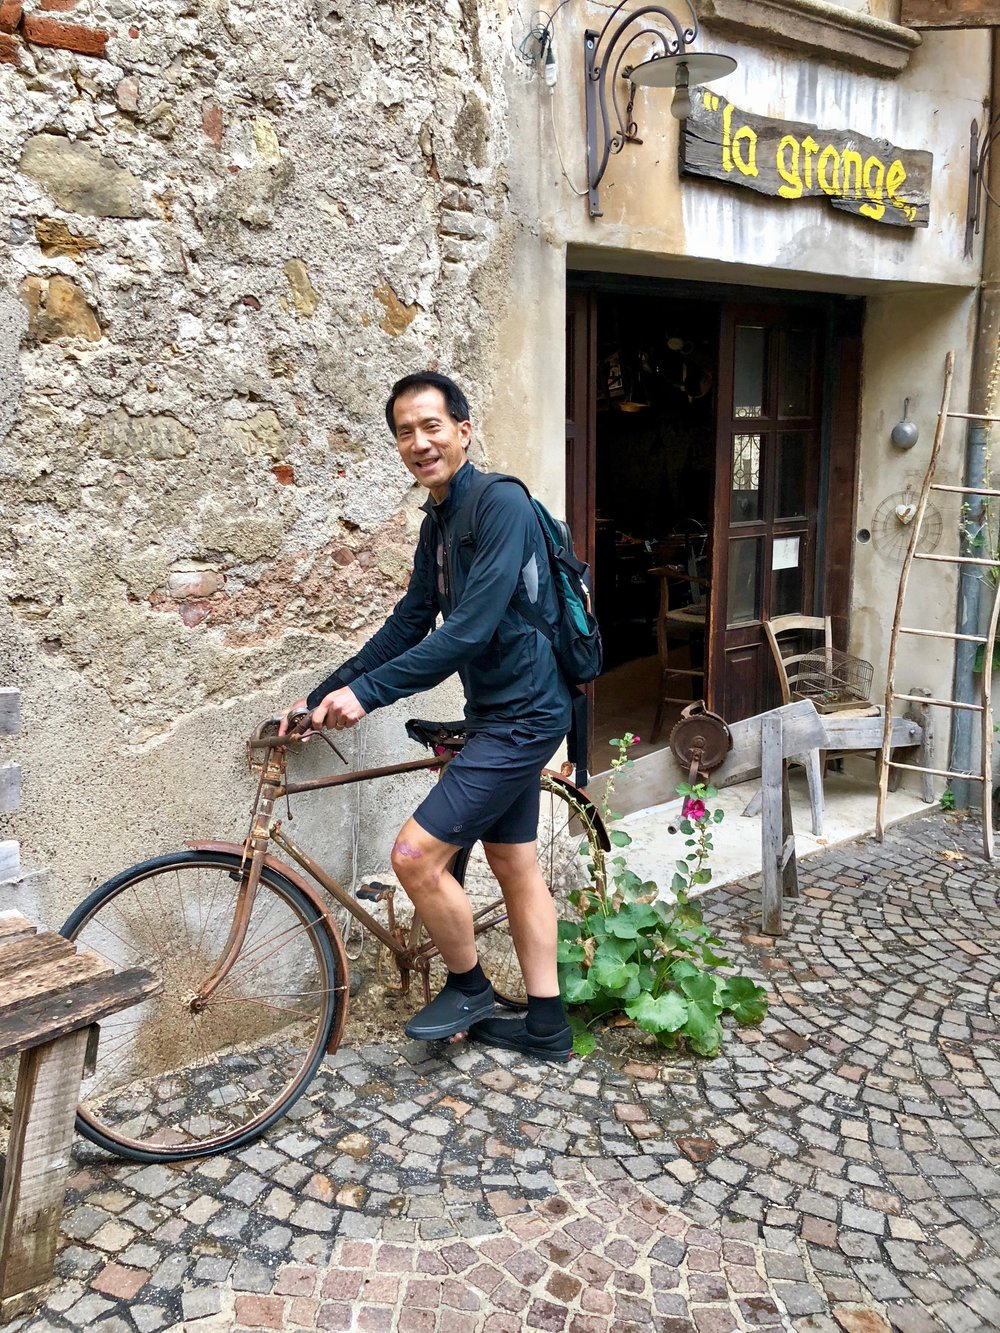 Trying the bike in Asolo